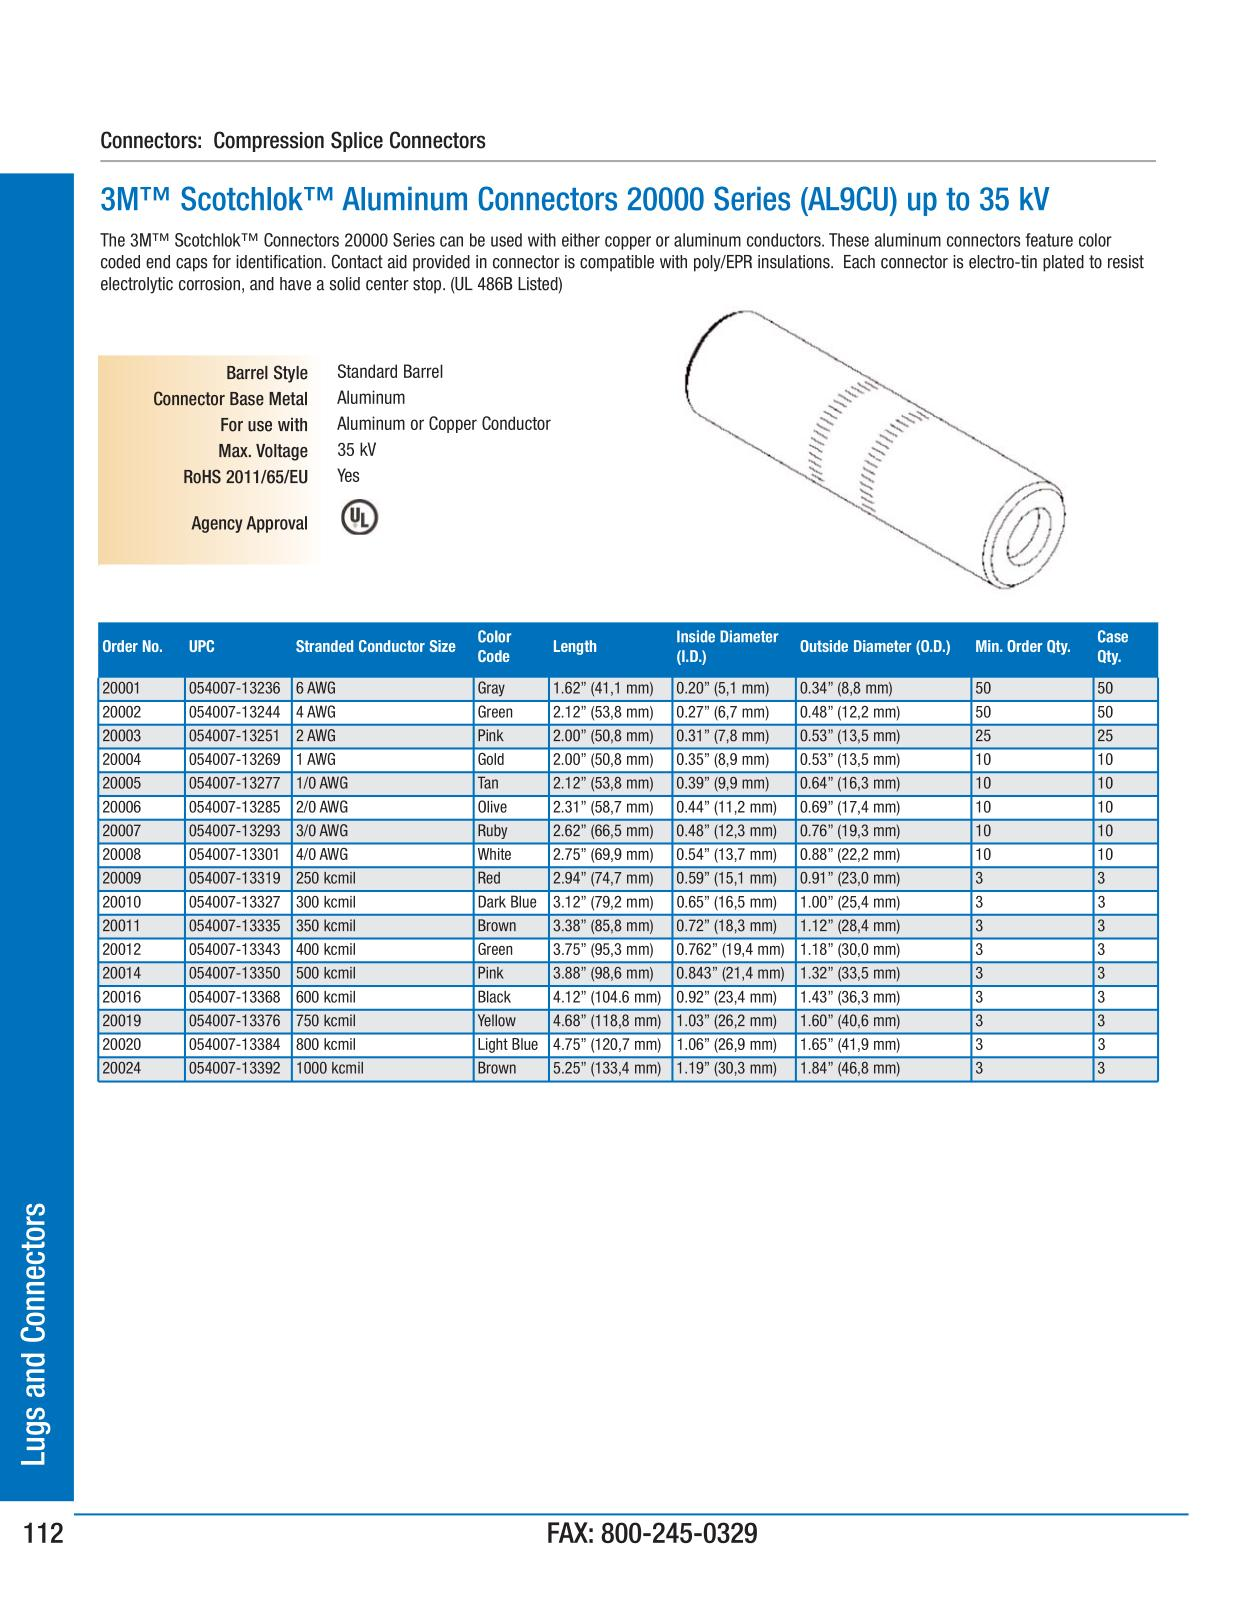 Lugs and Connectors - 3M Electrical Products Page 113